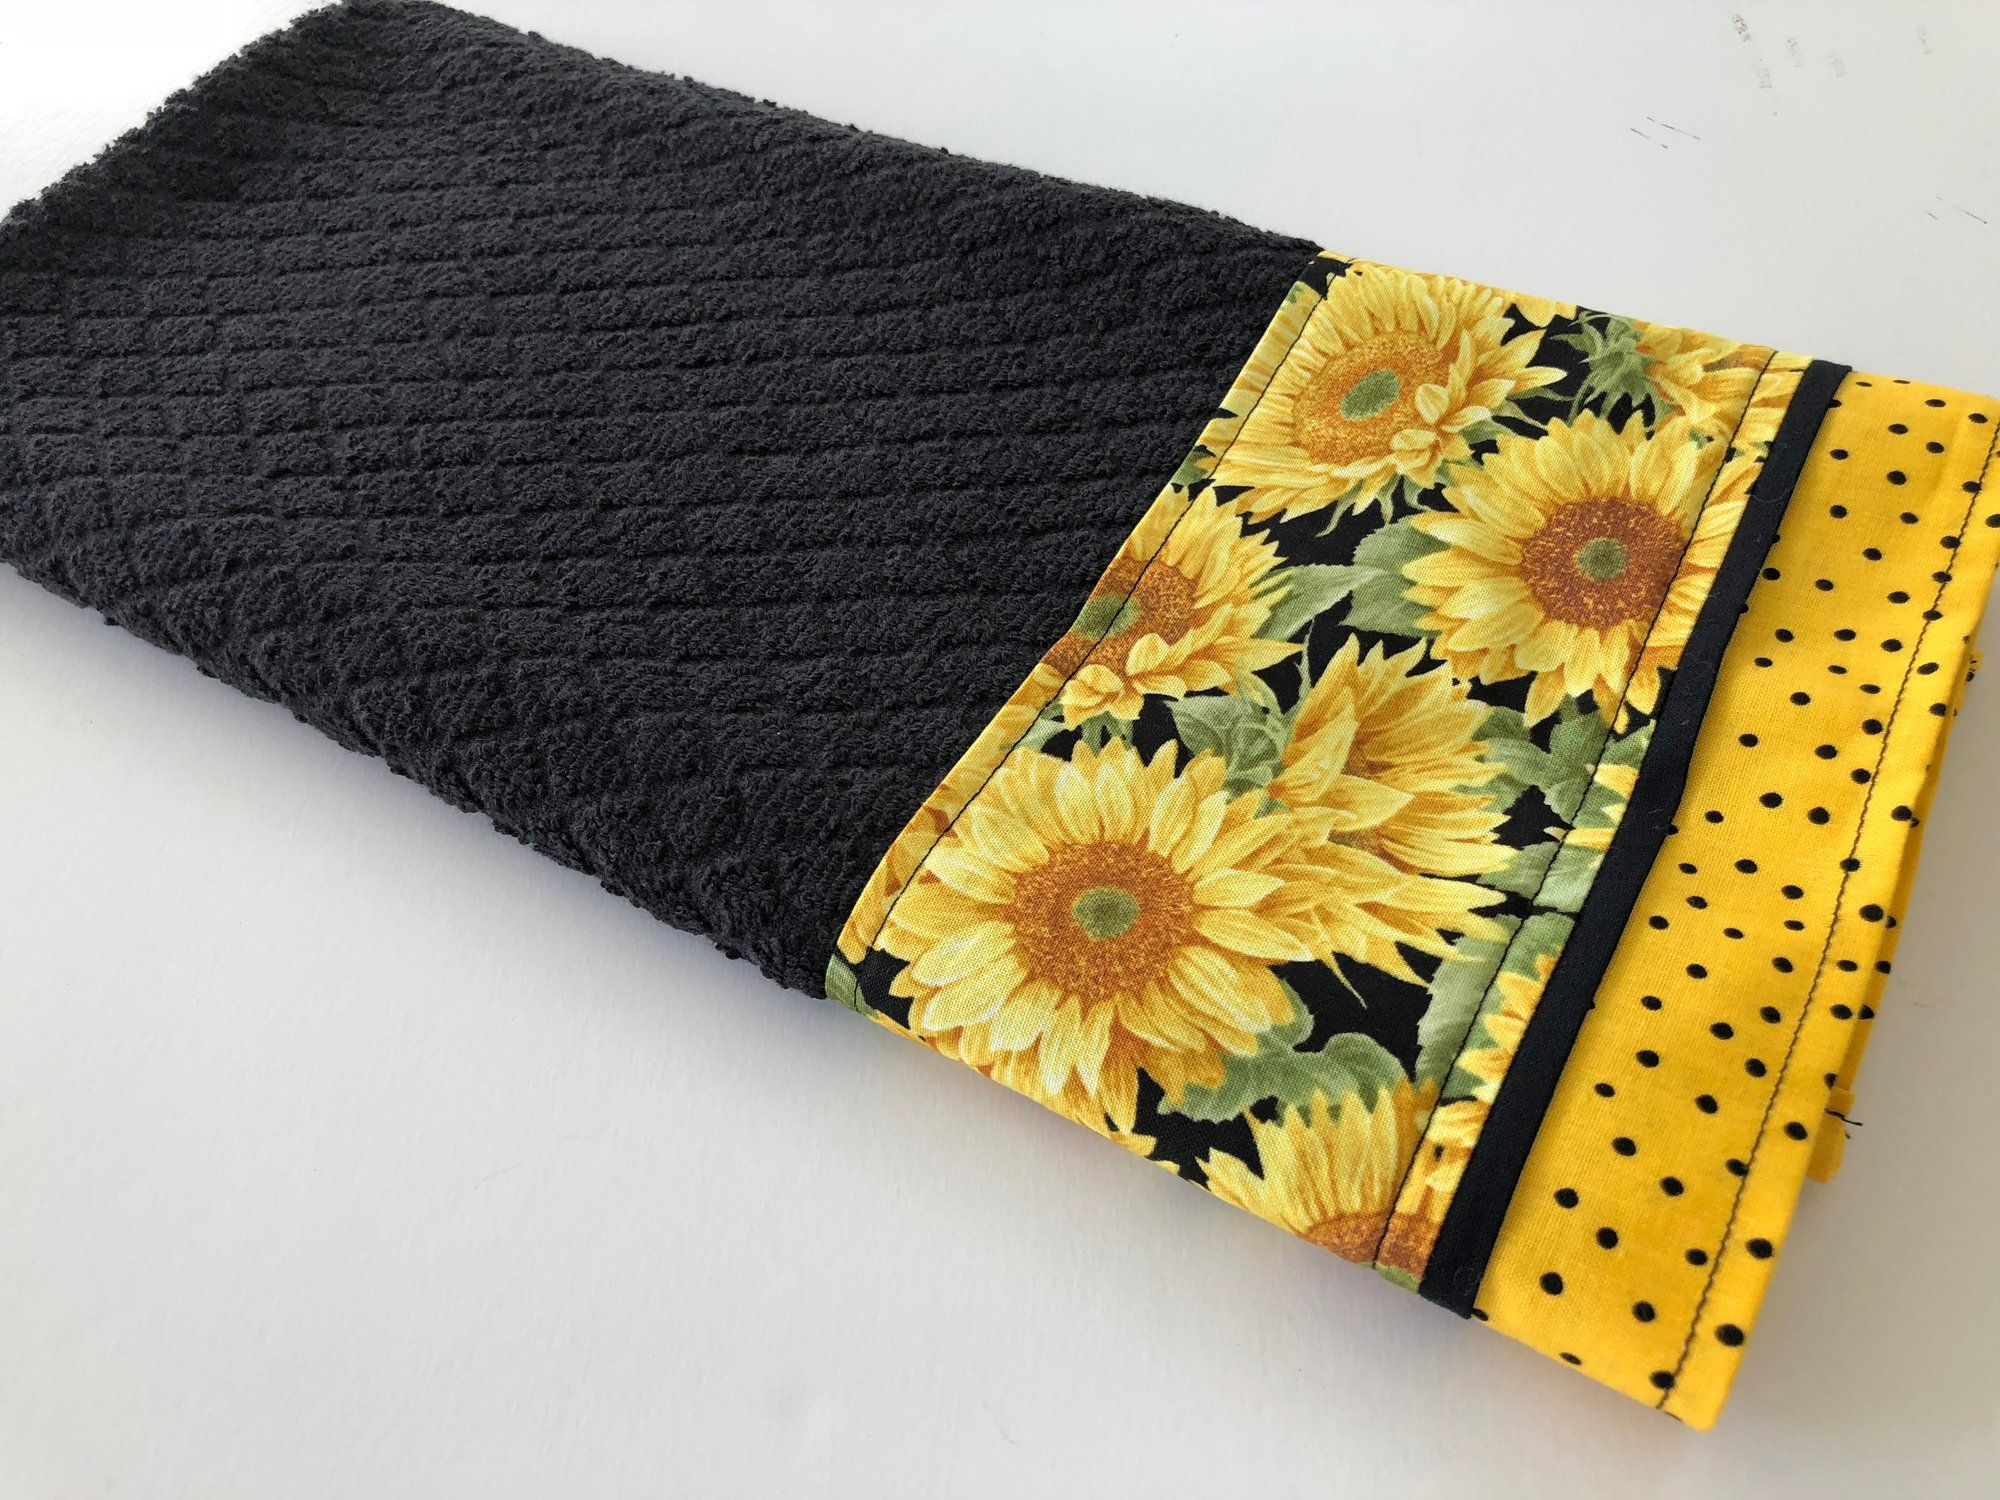 Sunflower Kitchen Dish Towel Black Yellow Kitchen Dish Towel Fabric Trimmed Hand Towel Tea Towel Sunflower Sunflower Kitchen Kitchen Dish Towel Hand Towels